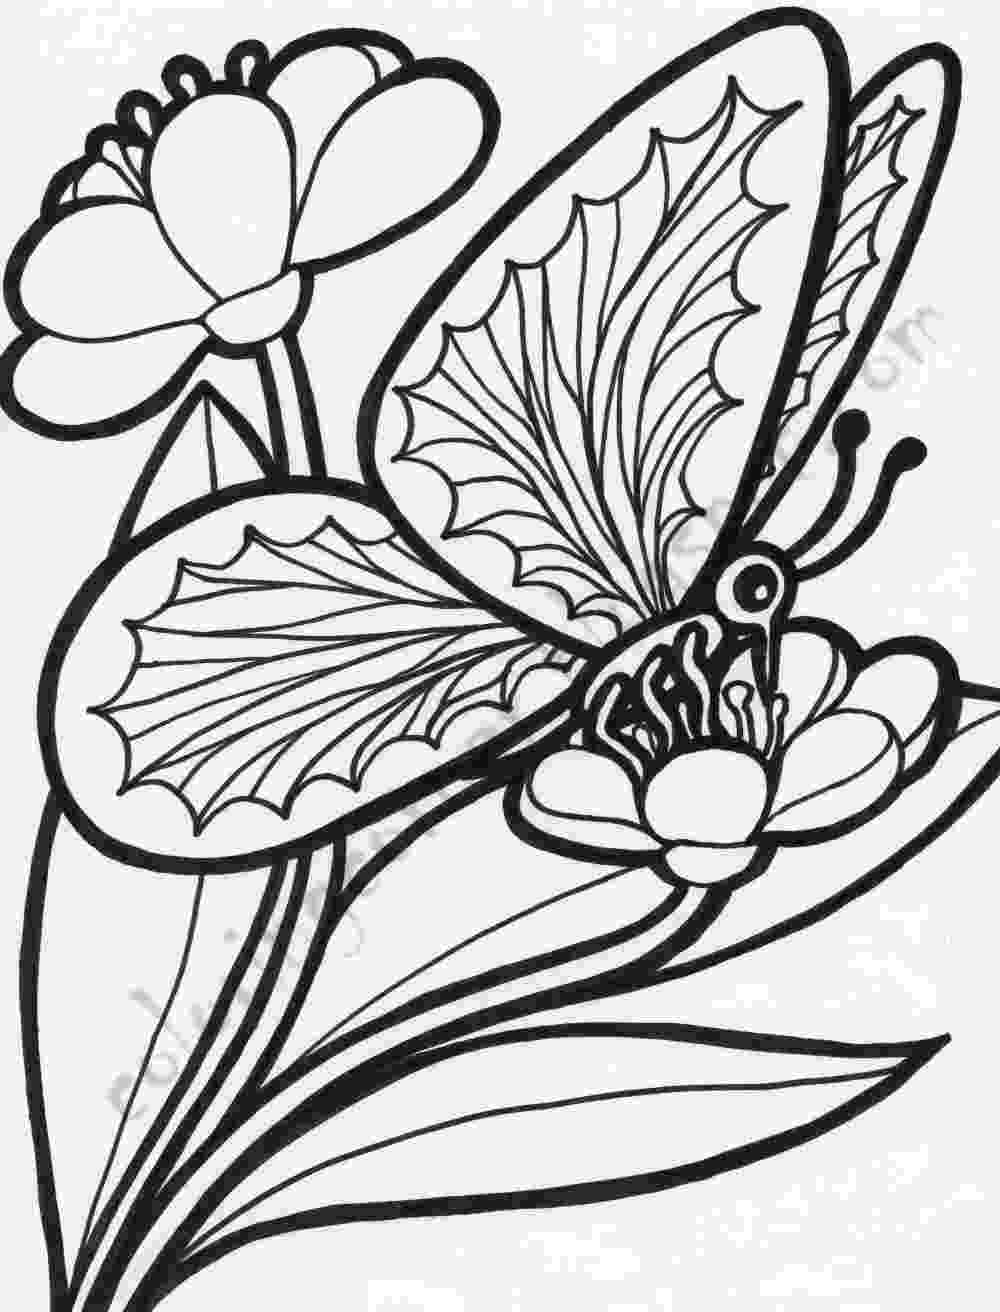 coloring page of flower free printable flower coloring pages for kids best of flower coloring page 1 3